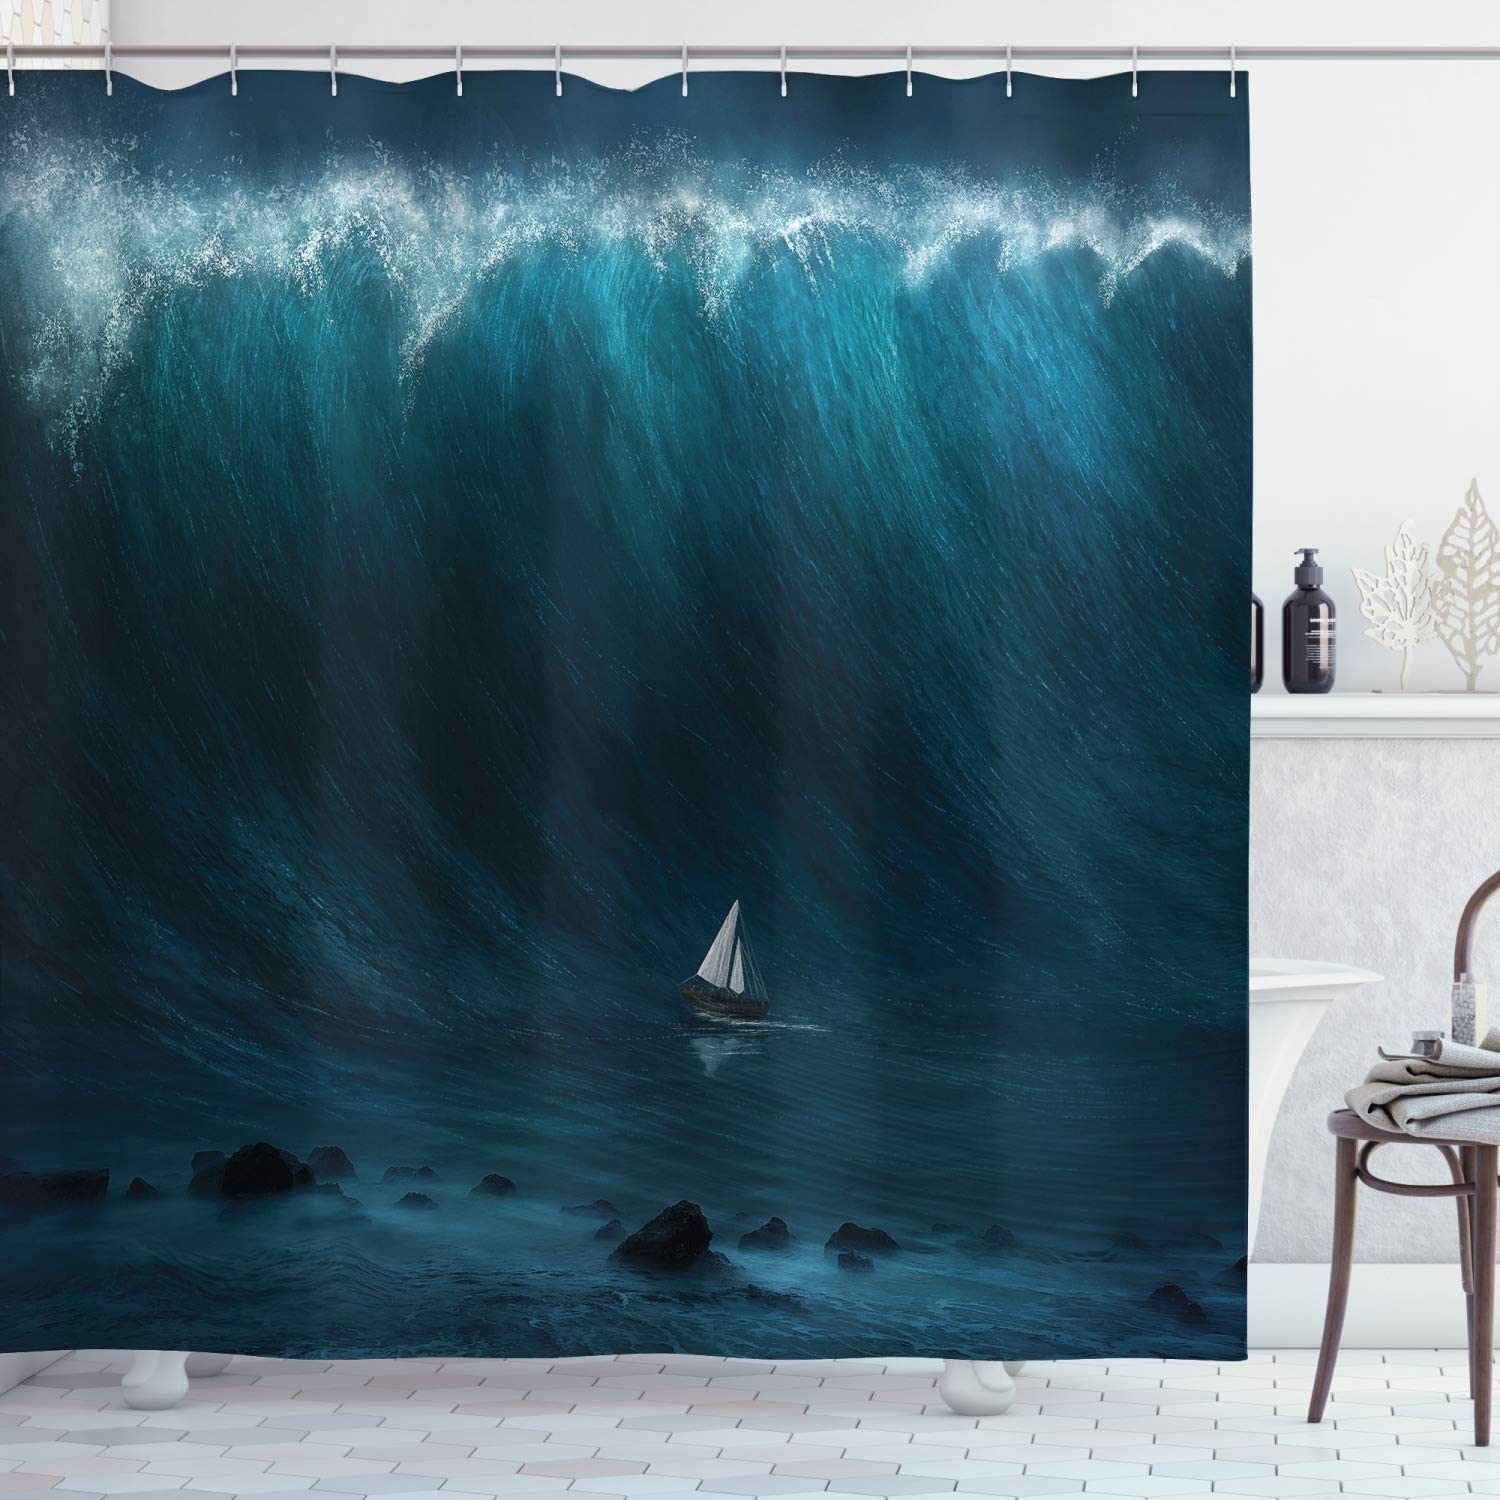 Ambesonne Ocean Shower Curtain, Small Boat Being Captured by a Large Wave Seastorm Tsunami Marine Aquatic Theme, Fabric Bathroom Decor Set with Hooks, 75 Inches Long, Dark Blue White